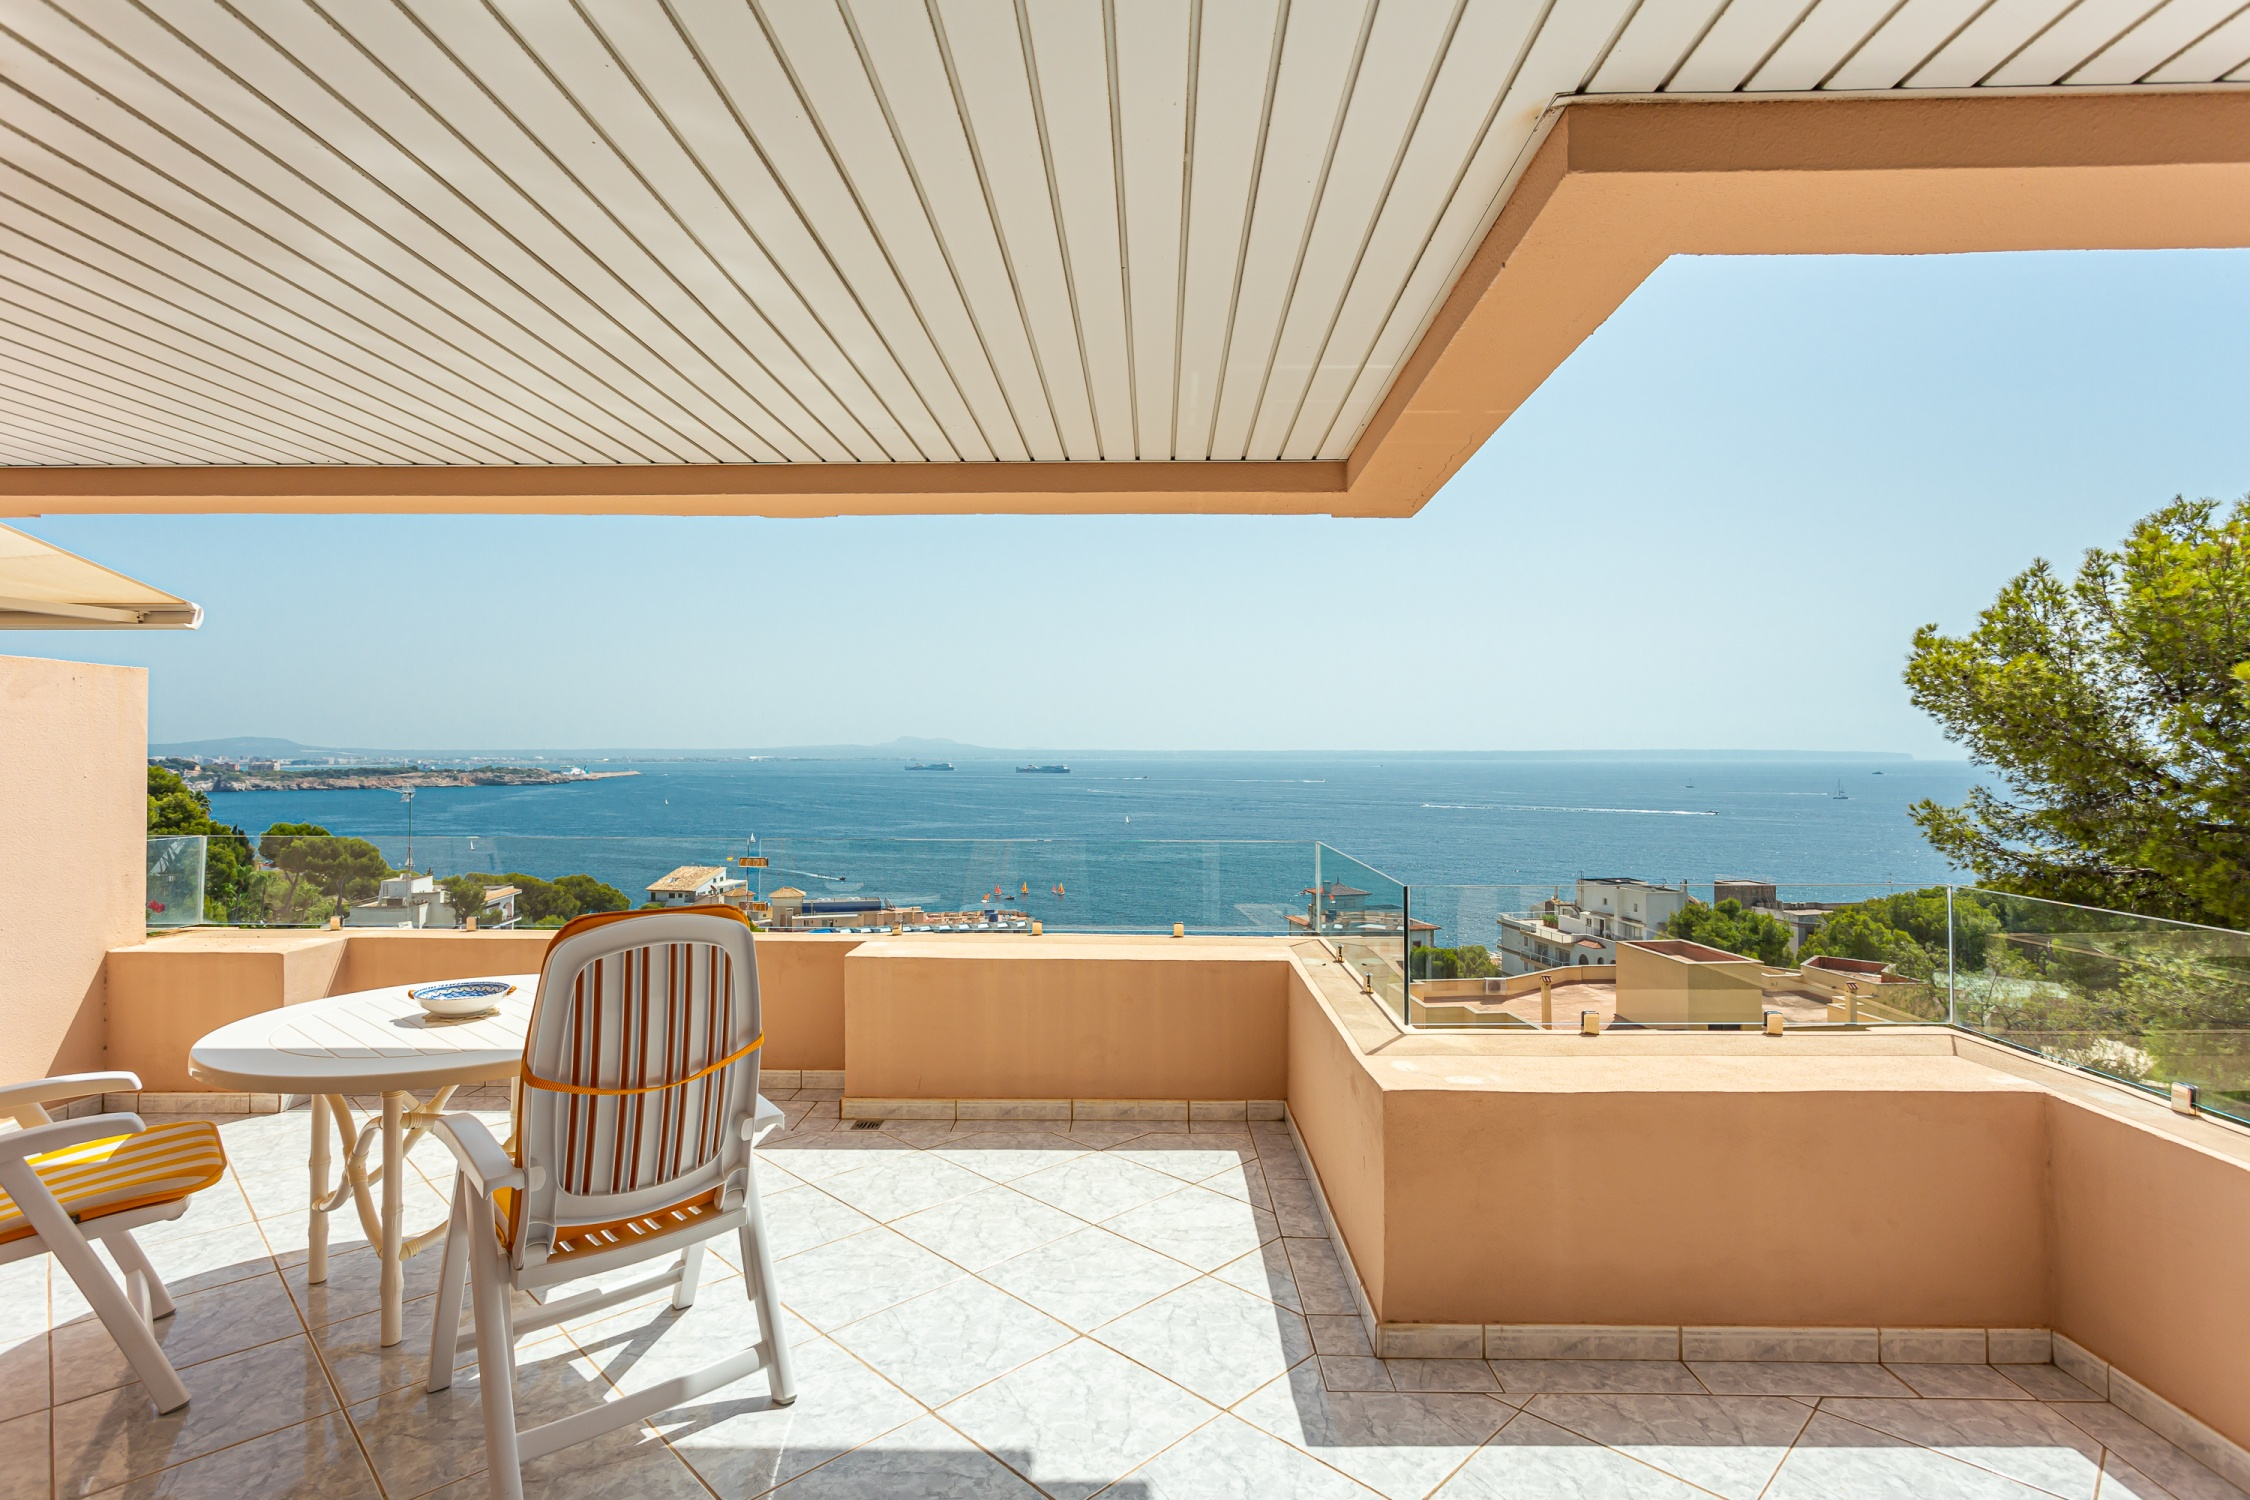 Illetes: 2 beds 2 bath, panoramic sea views, parking, pool